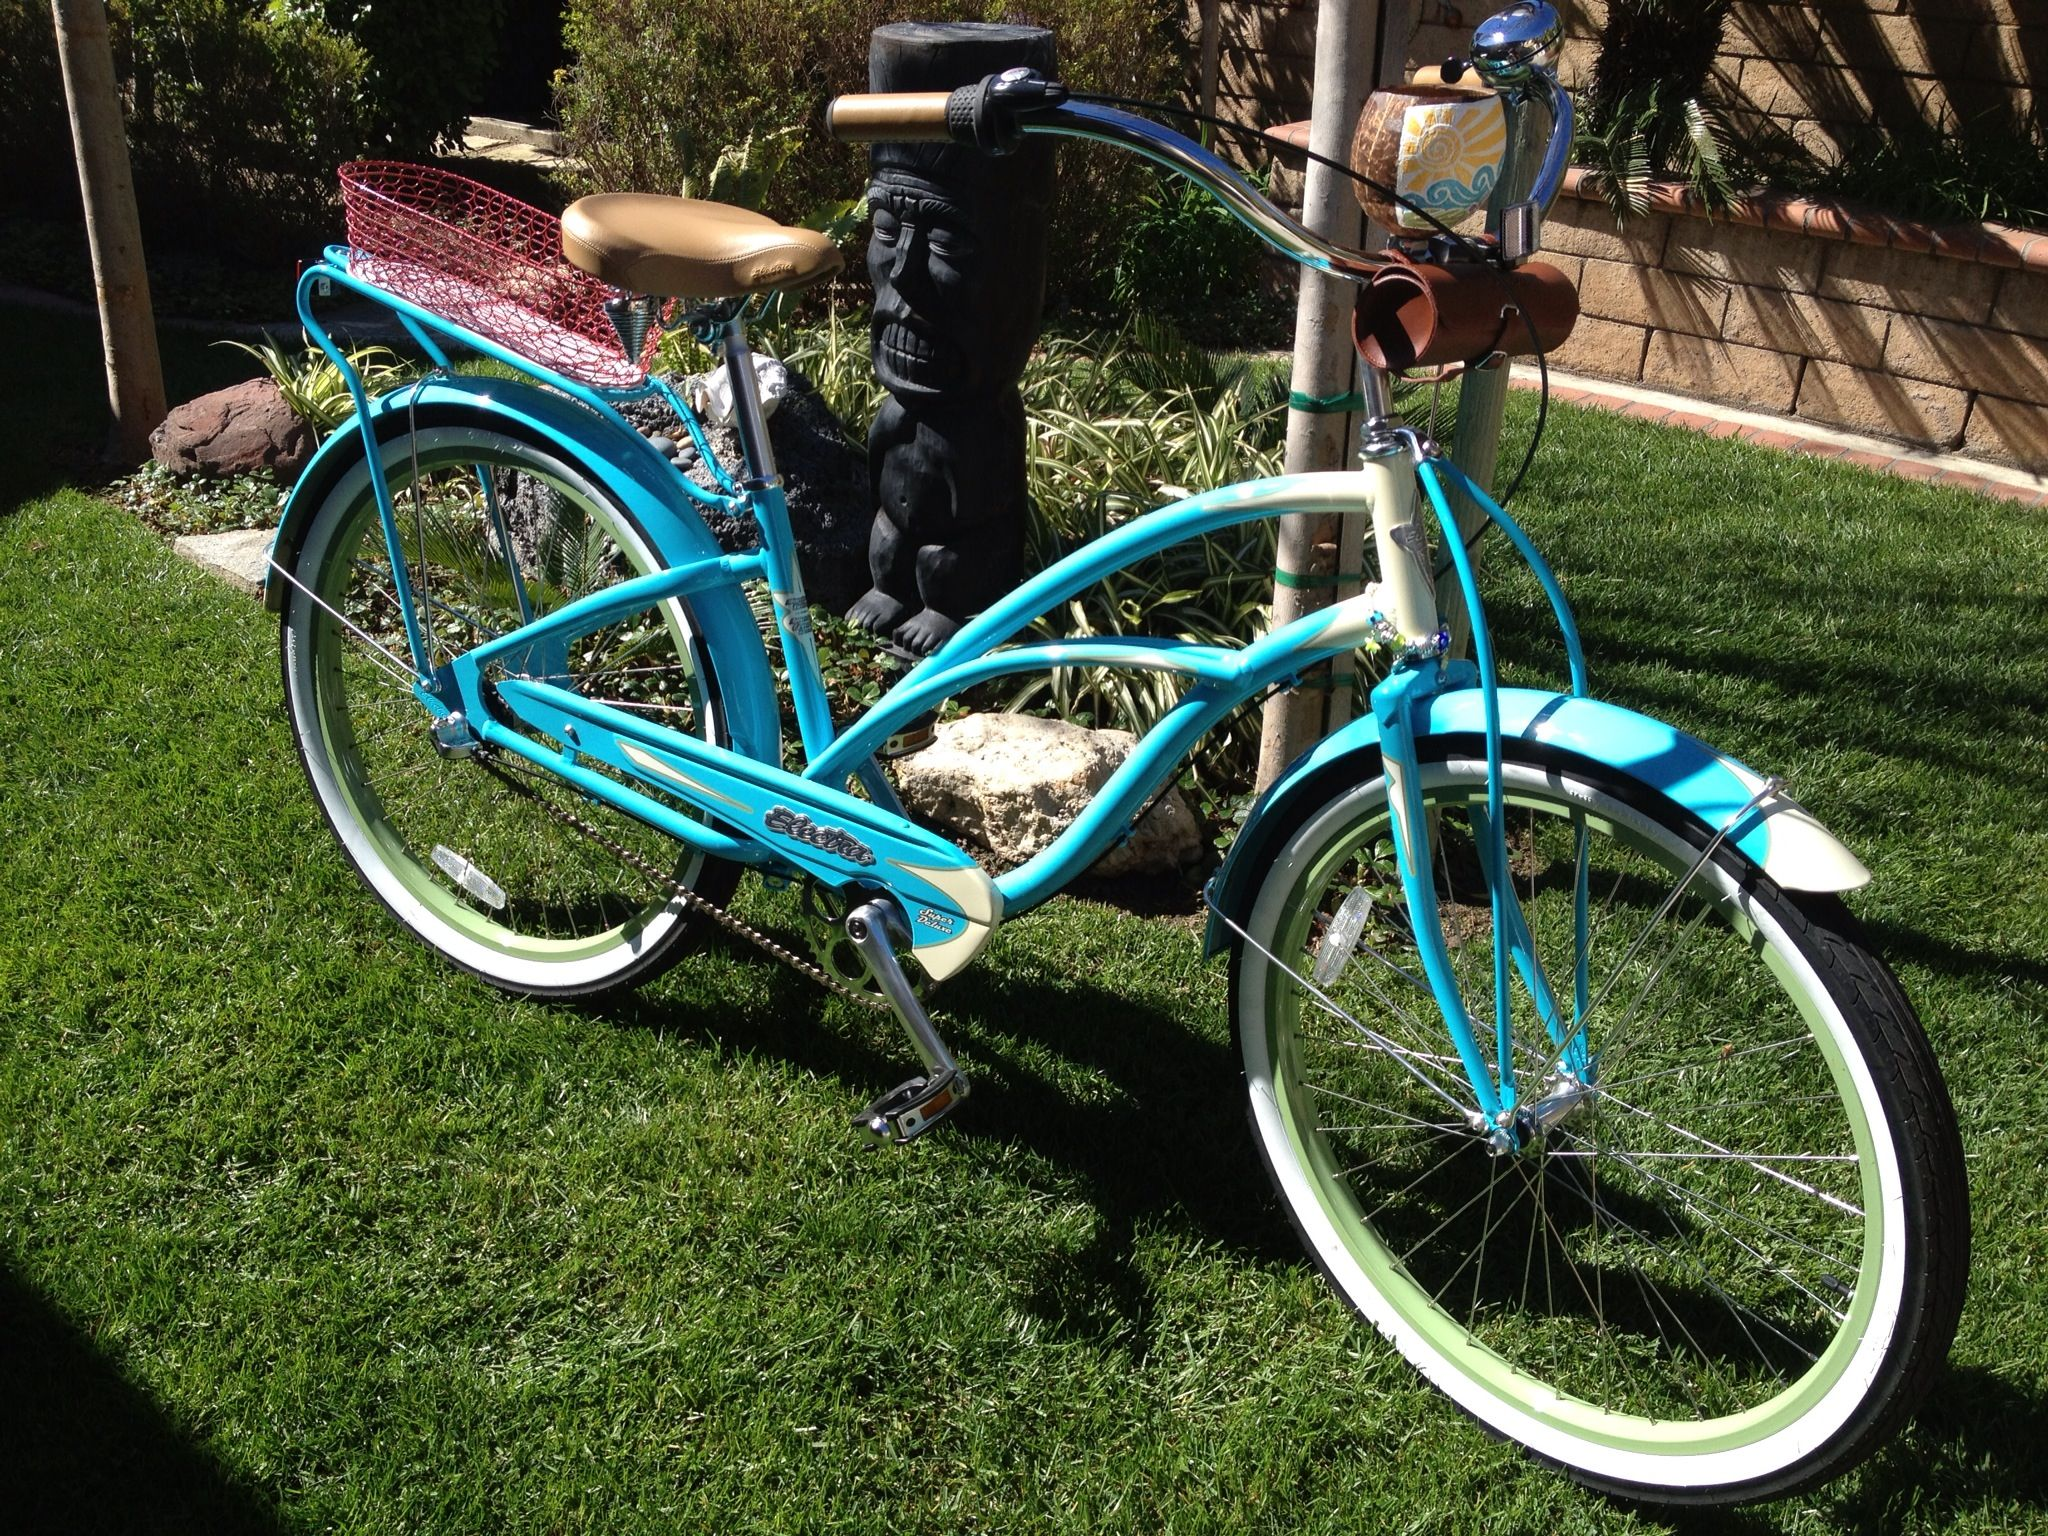 Super Deluxe Electra 3i Cruiser Bike With Coconut Cup Holder Also